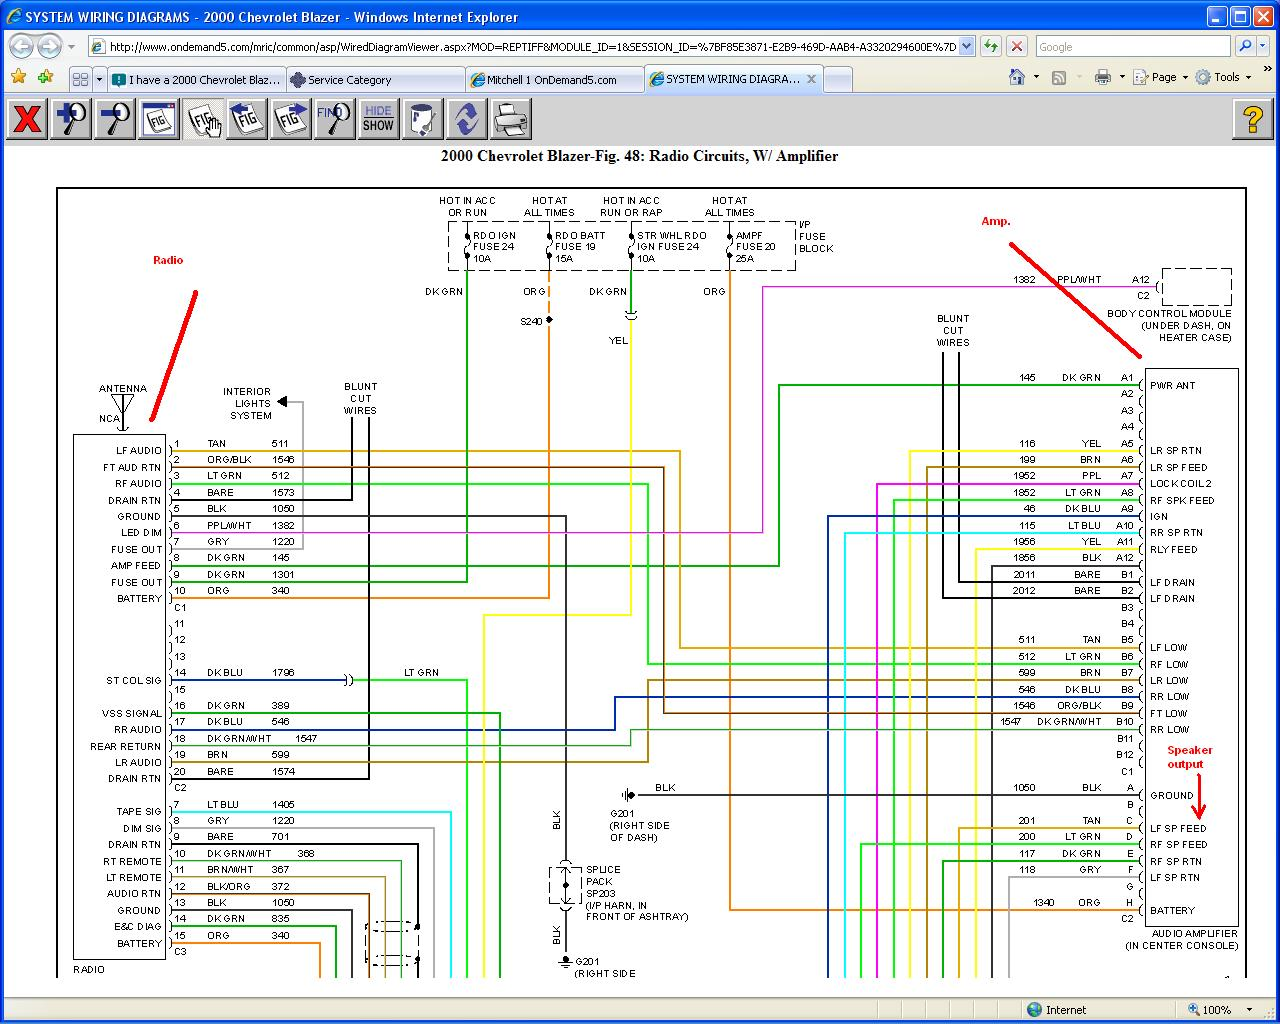 Radio Wiring Diagram 2001 Chevy Radio Wiring Diagram Radio Wiring 2000 Chevy  Express Radio Wire Diagram